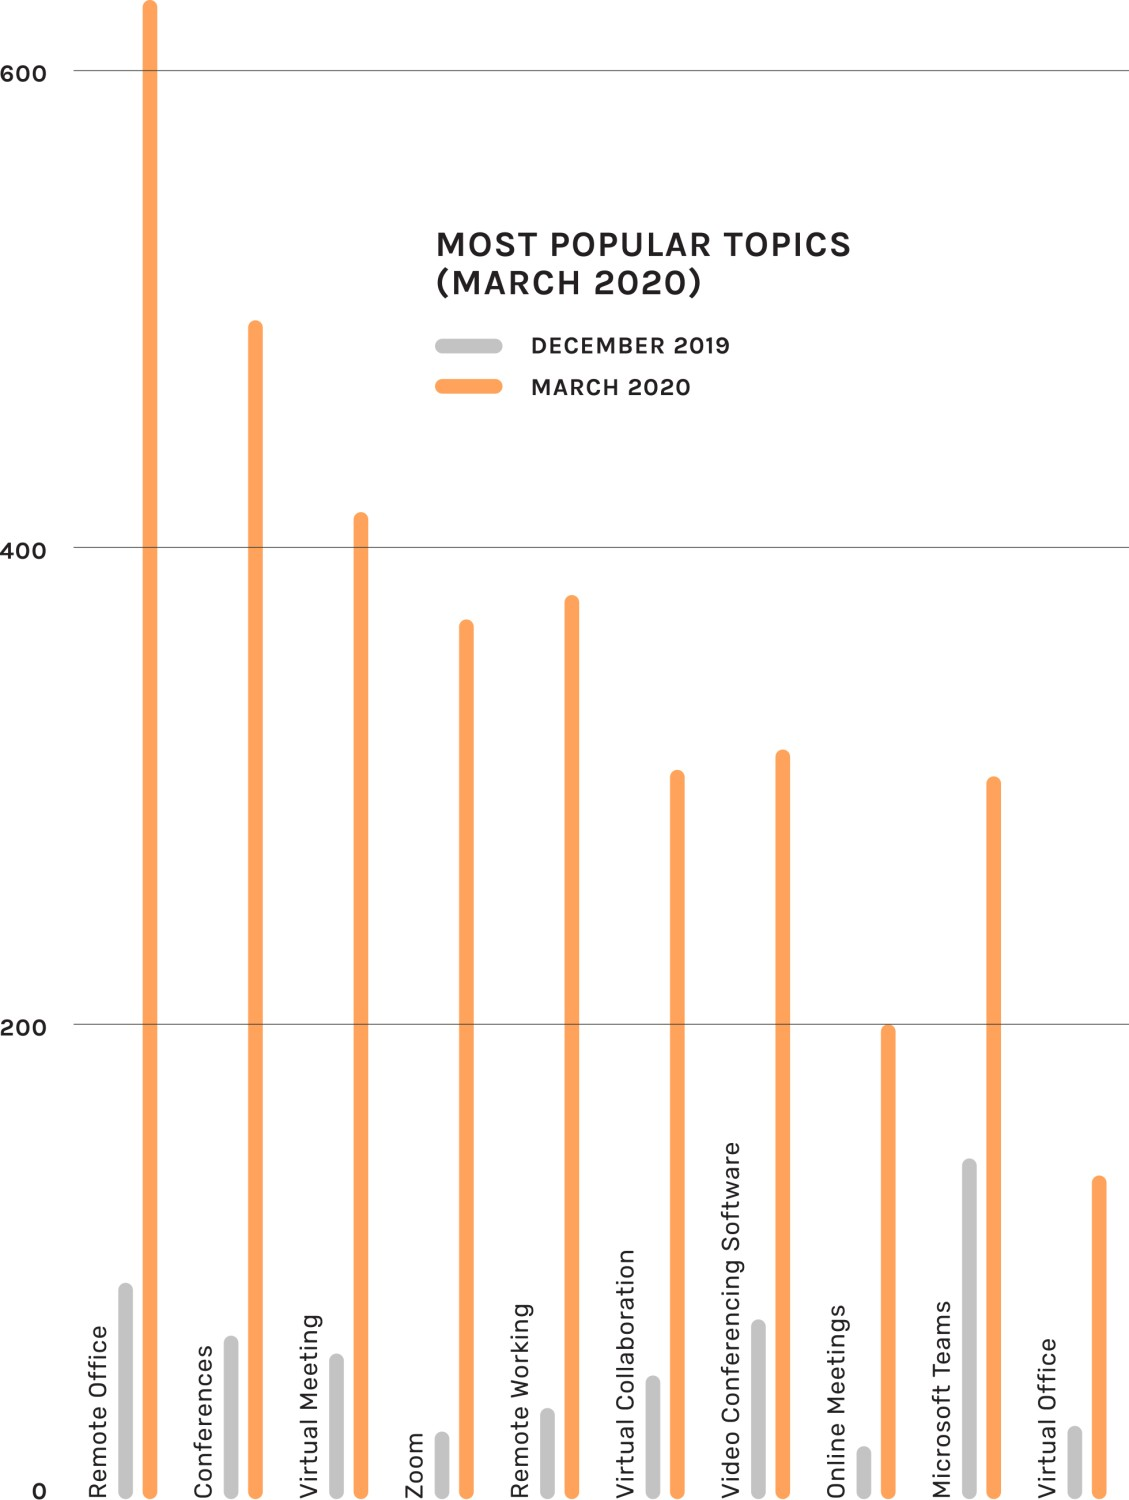 Most popular topics graph for March 2020